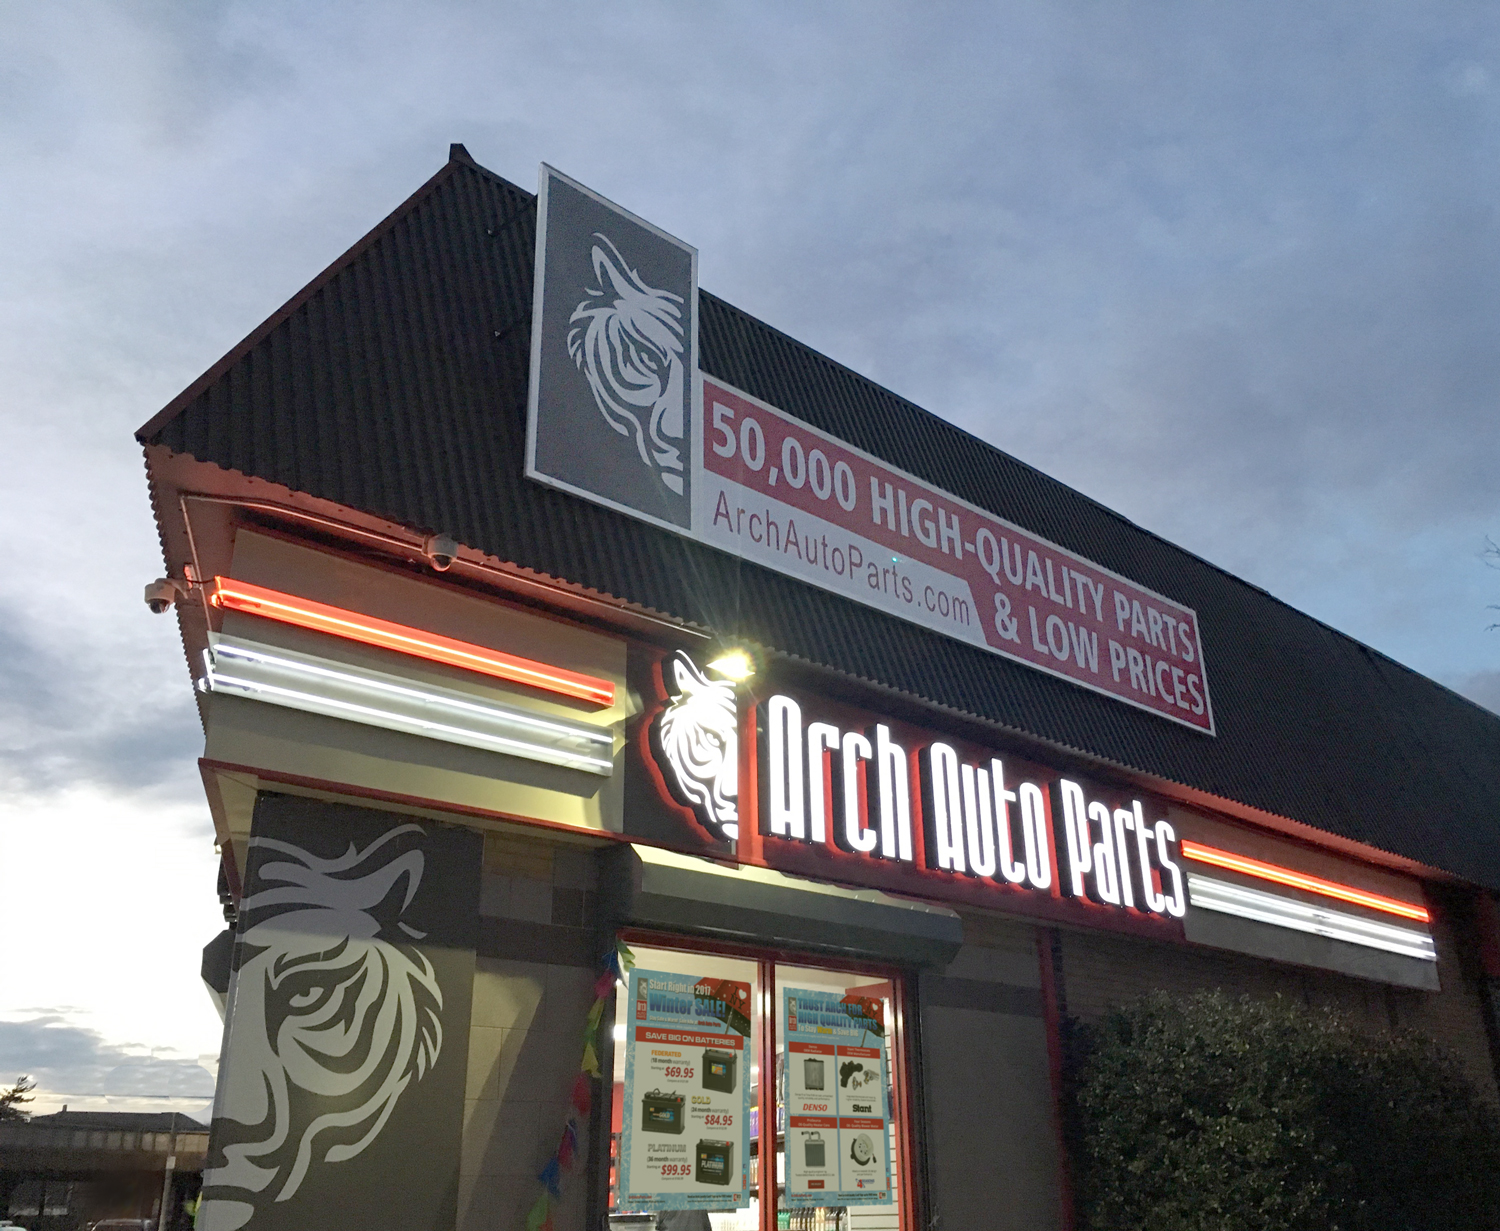 Nice Arch Auto Parts Opens Th Ny Store Kew Gardens Shoppers Save   With Engaging Arch Auto Parts Opens With Highquality Discount Auto Parts At Corner Of  Metropolitan Ave And Th Street Kew Gardens Ny With Amazing Garden Cake Images Also Cheap Garden Swing Chairs In Addition Terracotta Garden Ornaments And Stone Garden Steps As Well As Garden Couch Additionally Endsleigh Garden  Leisure From Prwebcom With   Engaging Arch Auto Parts Opens Th Ny Store Kew Gardens Shoppers Save   With Amazing Arch Auto Parts Opens With Highquality Discount Auto Parts At Corner Of  Metropolitan Ave And Th Street Kew Gardens Ny And Nice Garden Cake Images Also Cheap Garden Swing Chairs In Addition Terracotta Garden Ornaments From Prwebcom